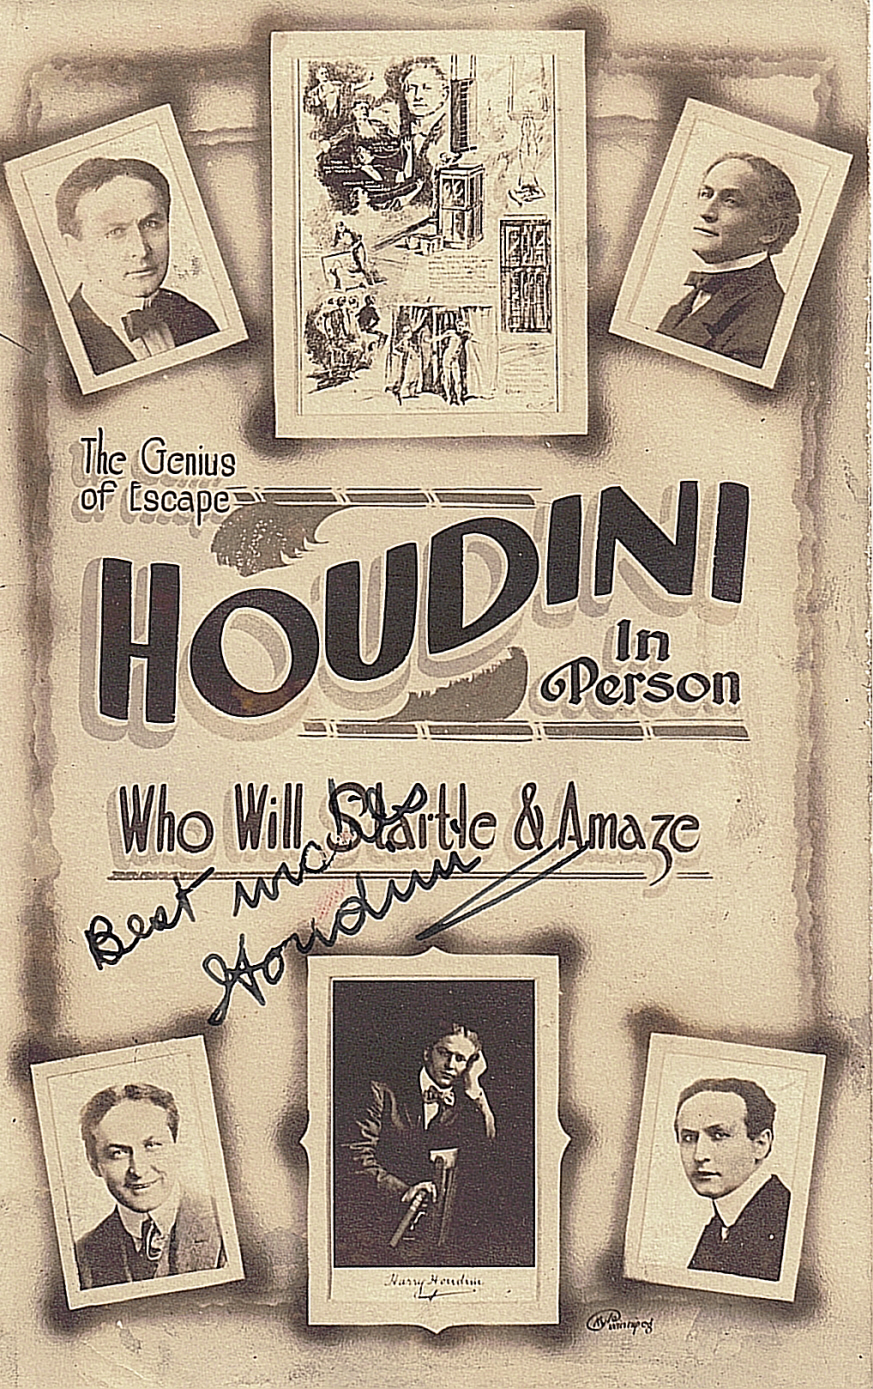 the history of harry houdini essay History » history: biographies  even as a child erich weiss, aka harry houdini, knows that his goal in life is to become a world famous illusionist it was difficult for erich's family being pilgrims from europe  express your owns thoughts and ideas on this essay by writing a grade and/or critique.